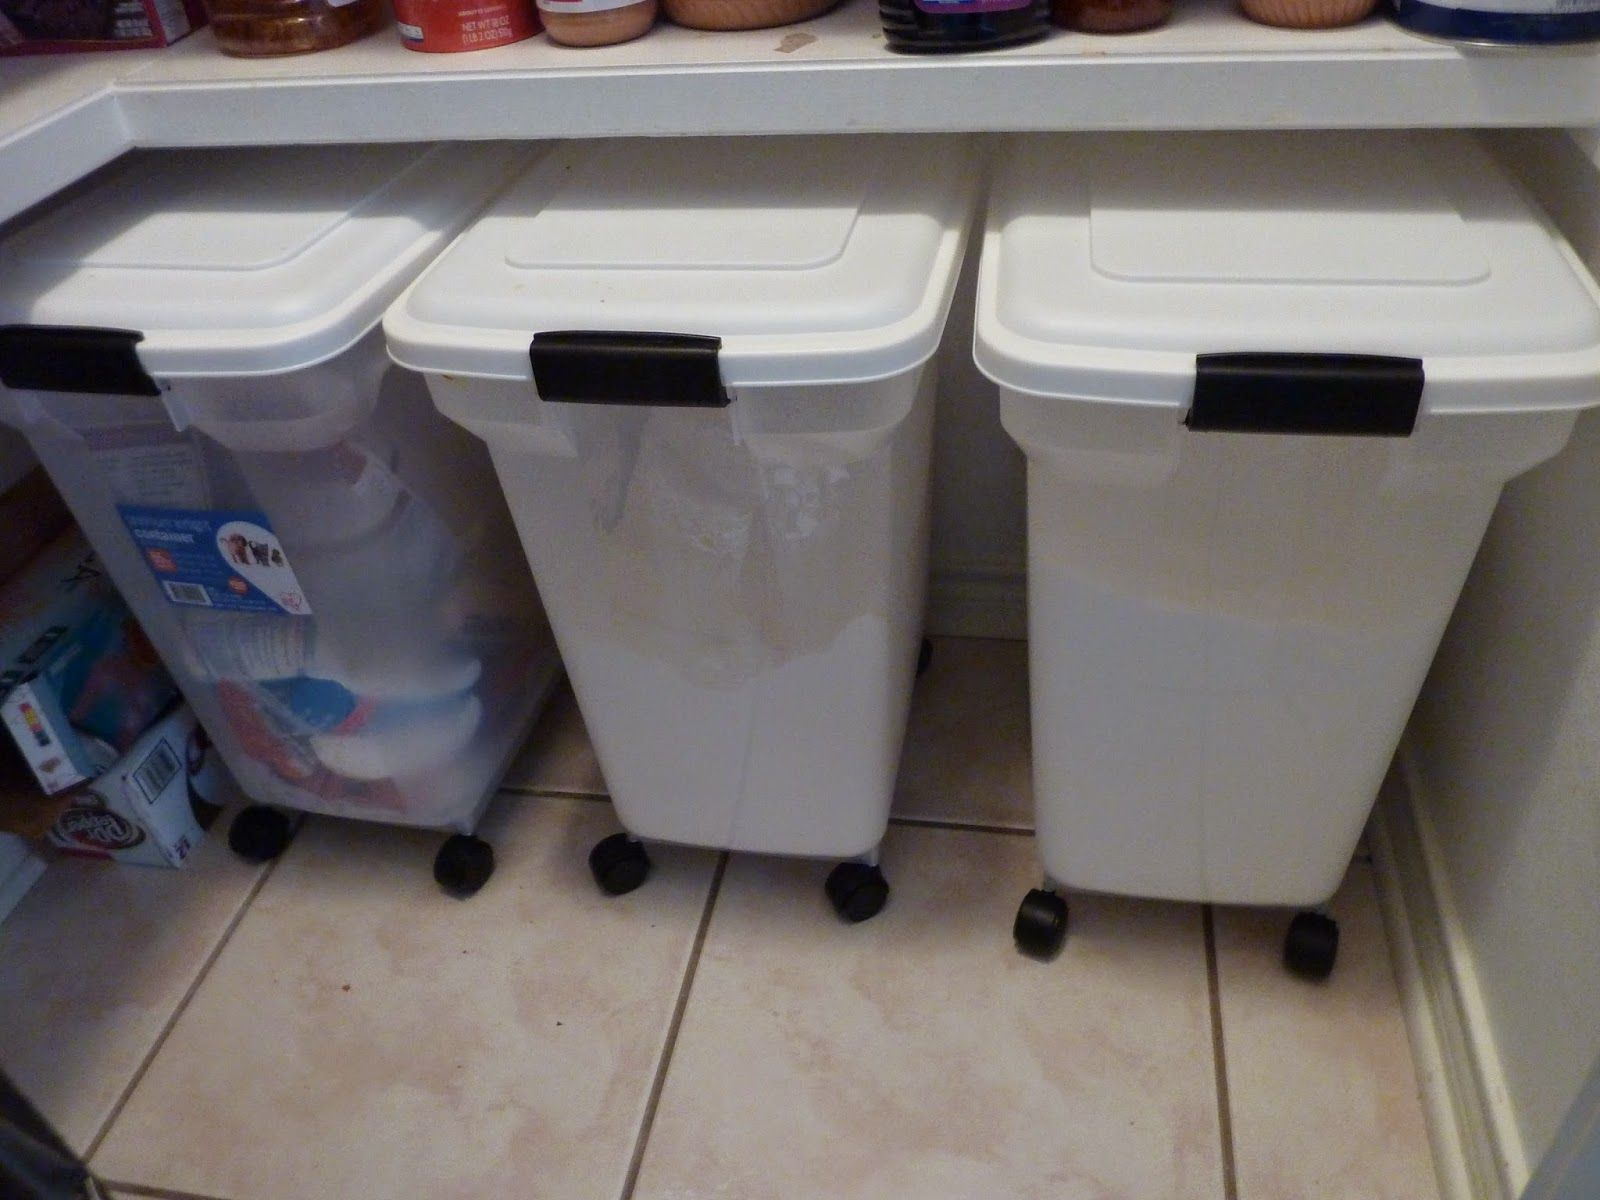 Kimmy S Kitchen Some Of My Favorite Food Storage Items Dog Food Storage Containers Flour Storage Dry Food Storage